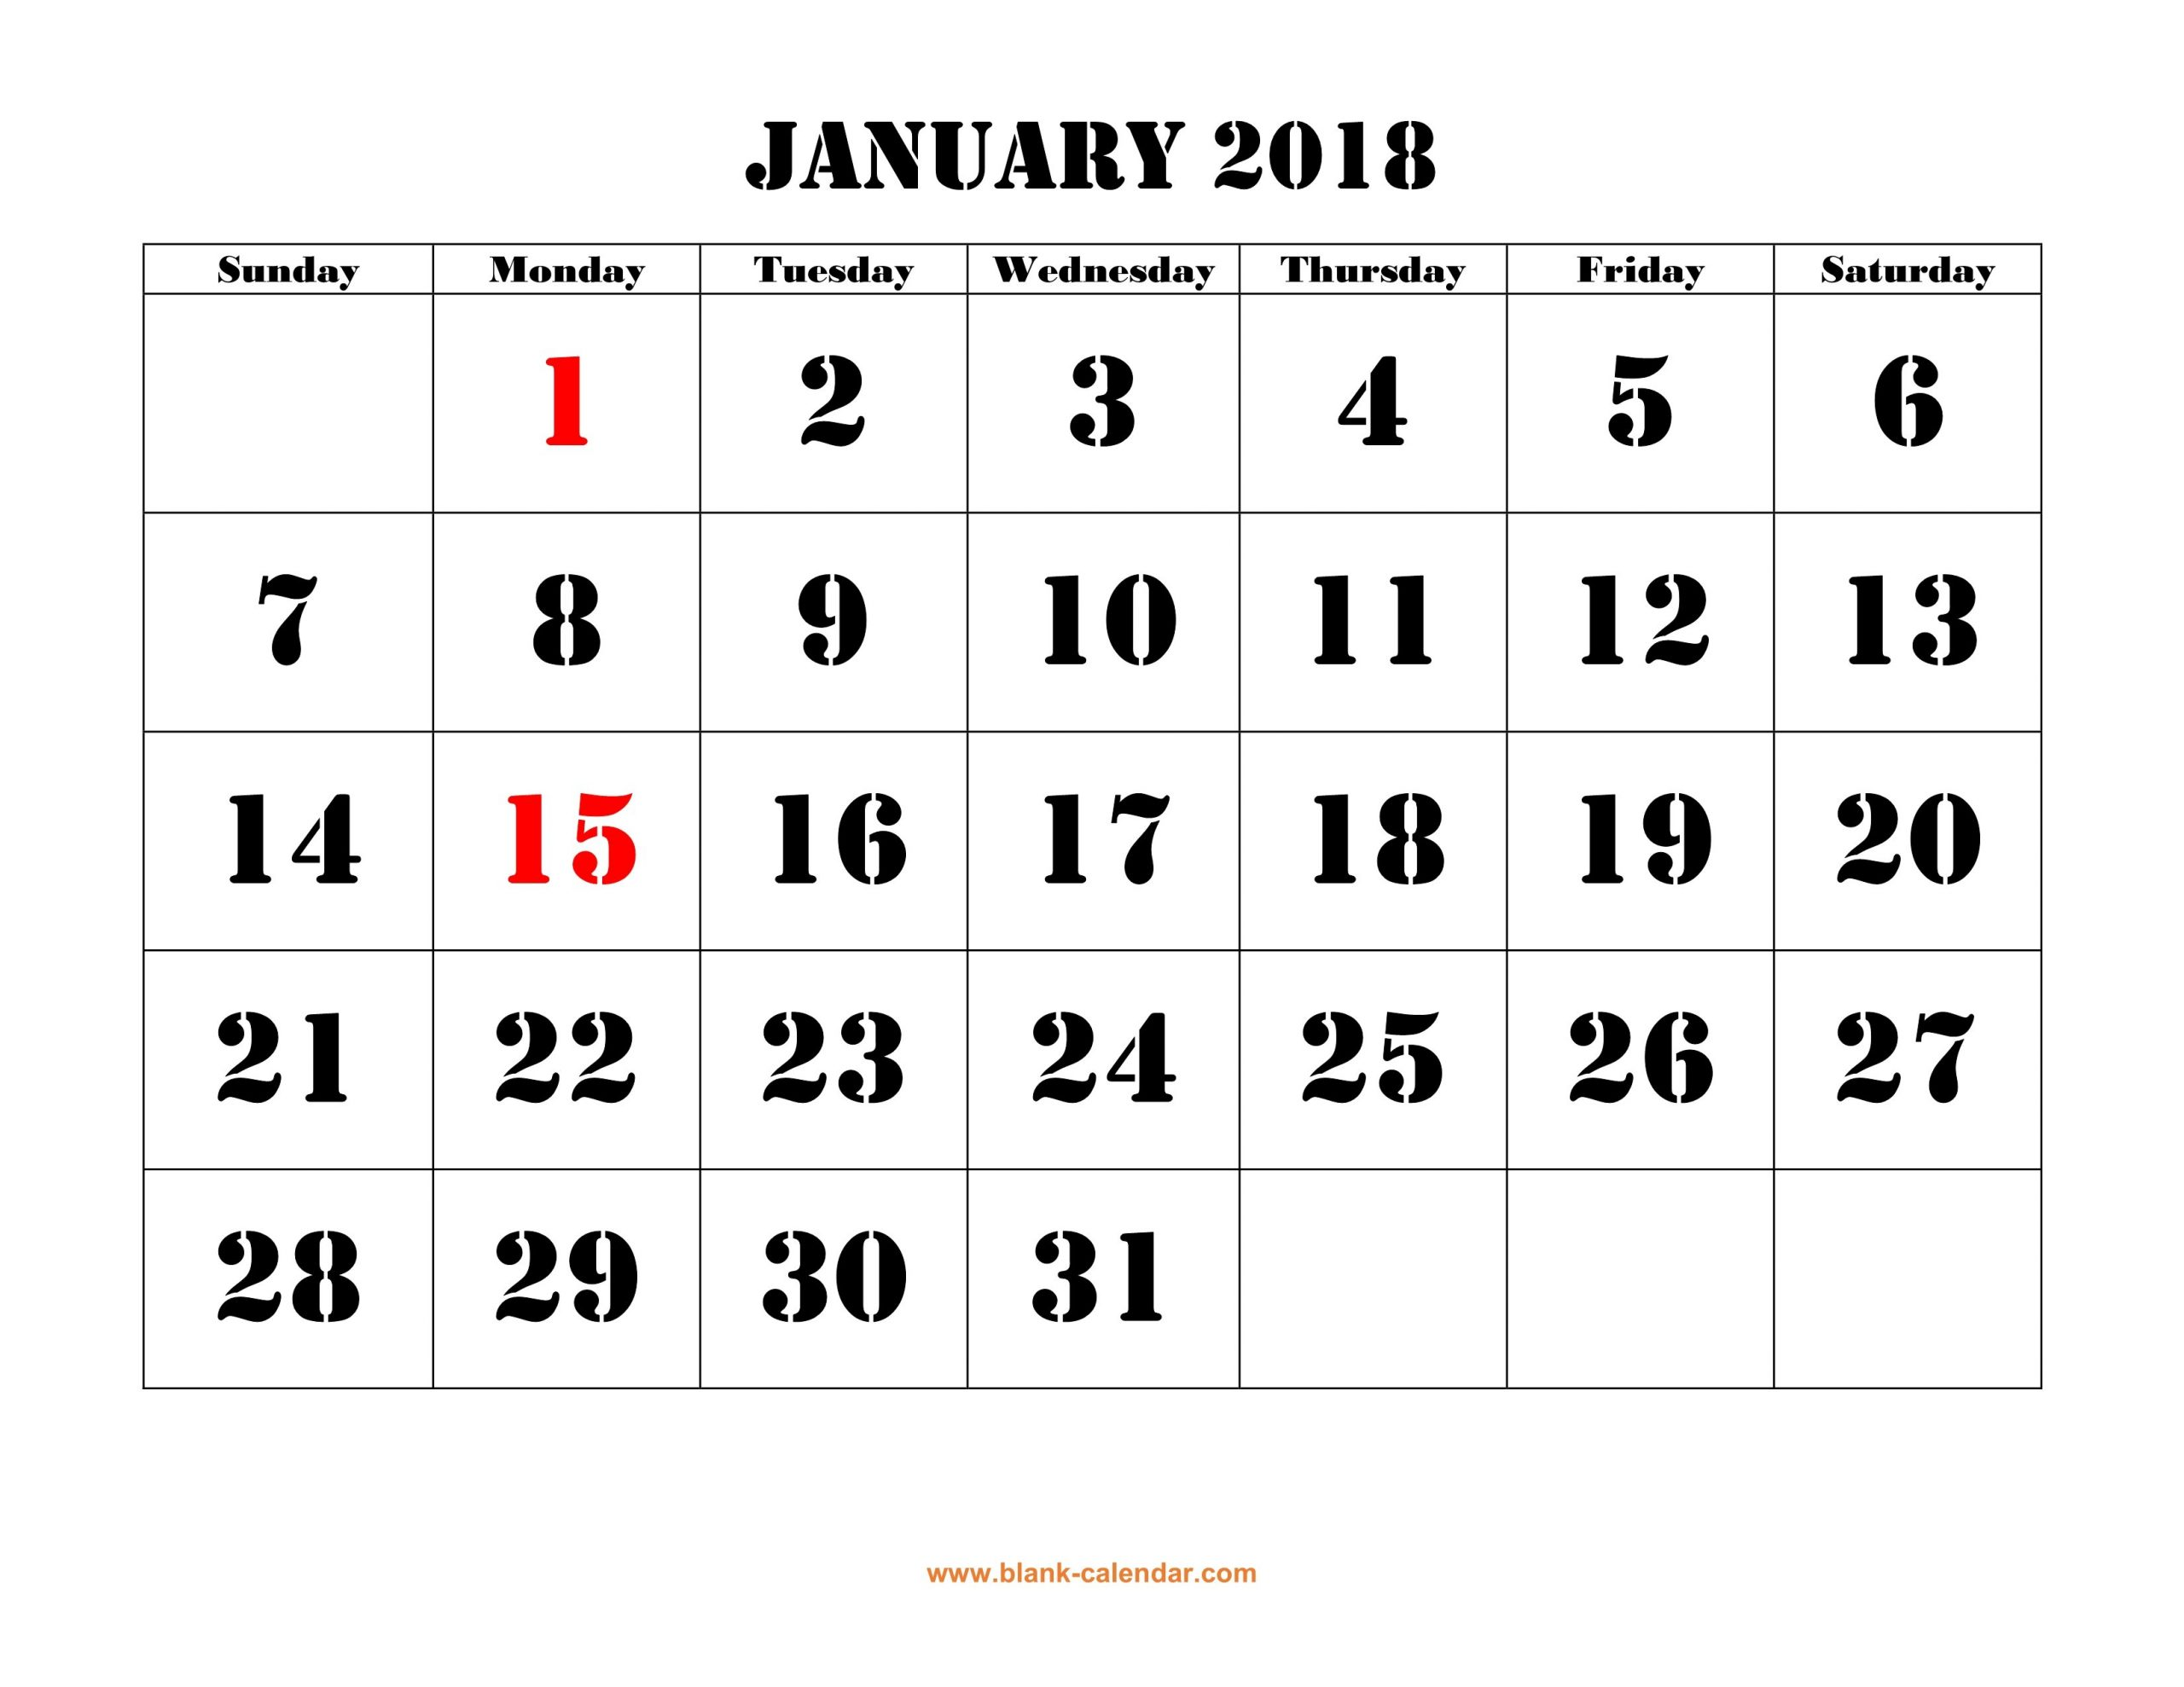 Printable Calendar 2018 | Free Download Yearly Calendar Printable Month Calendar With Times